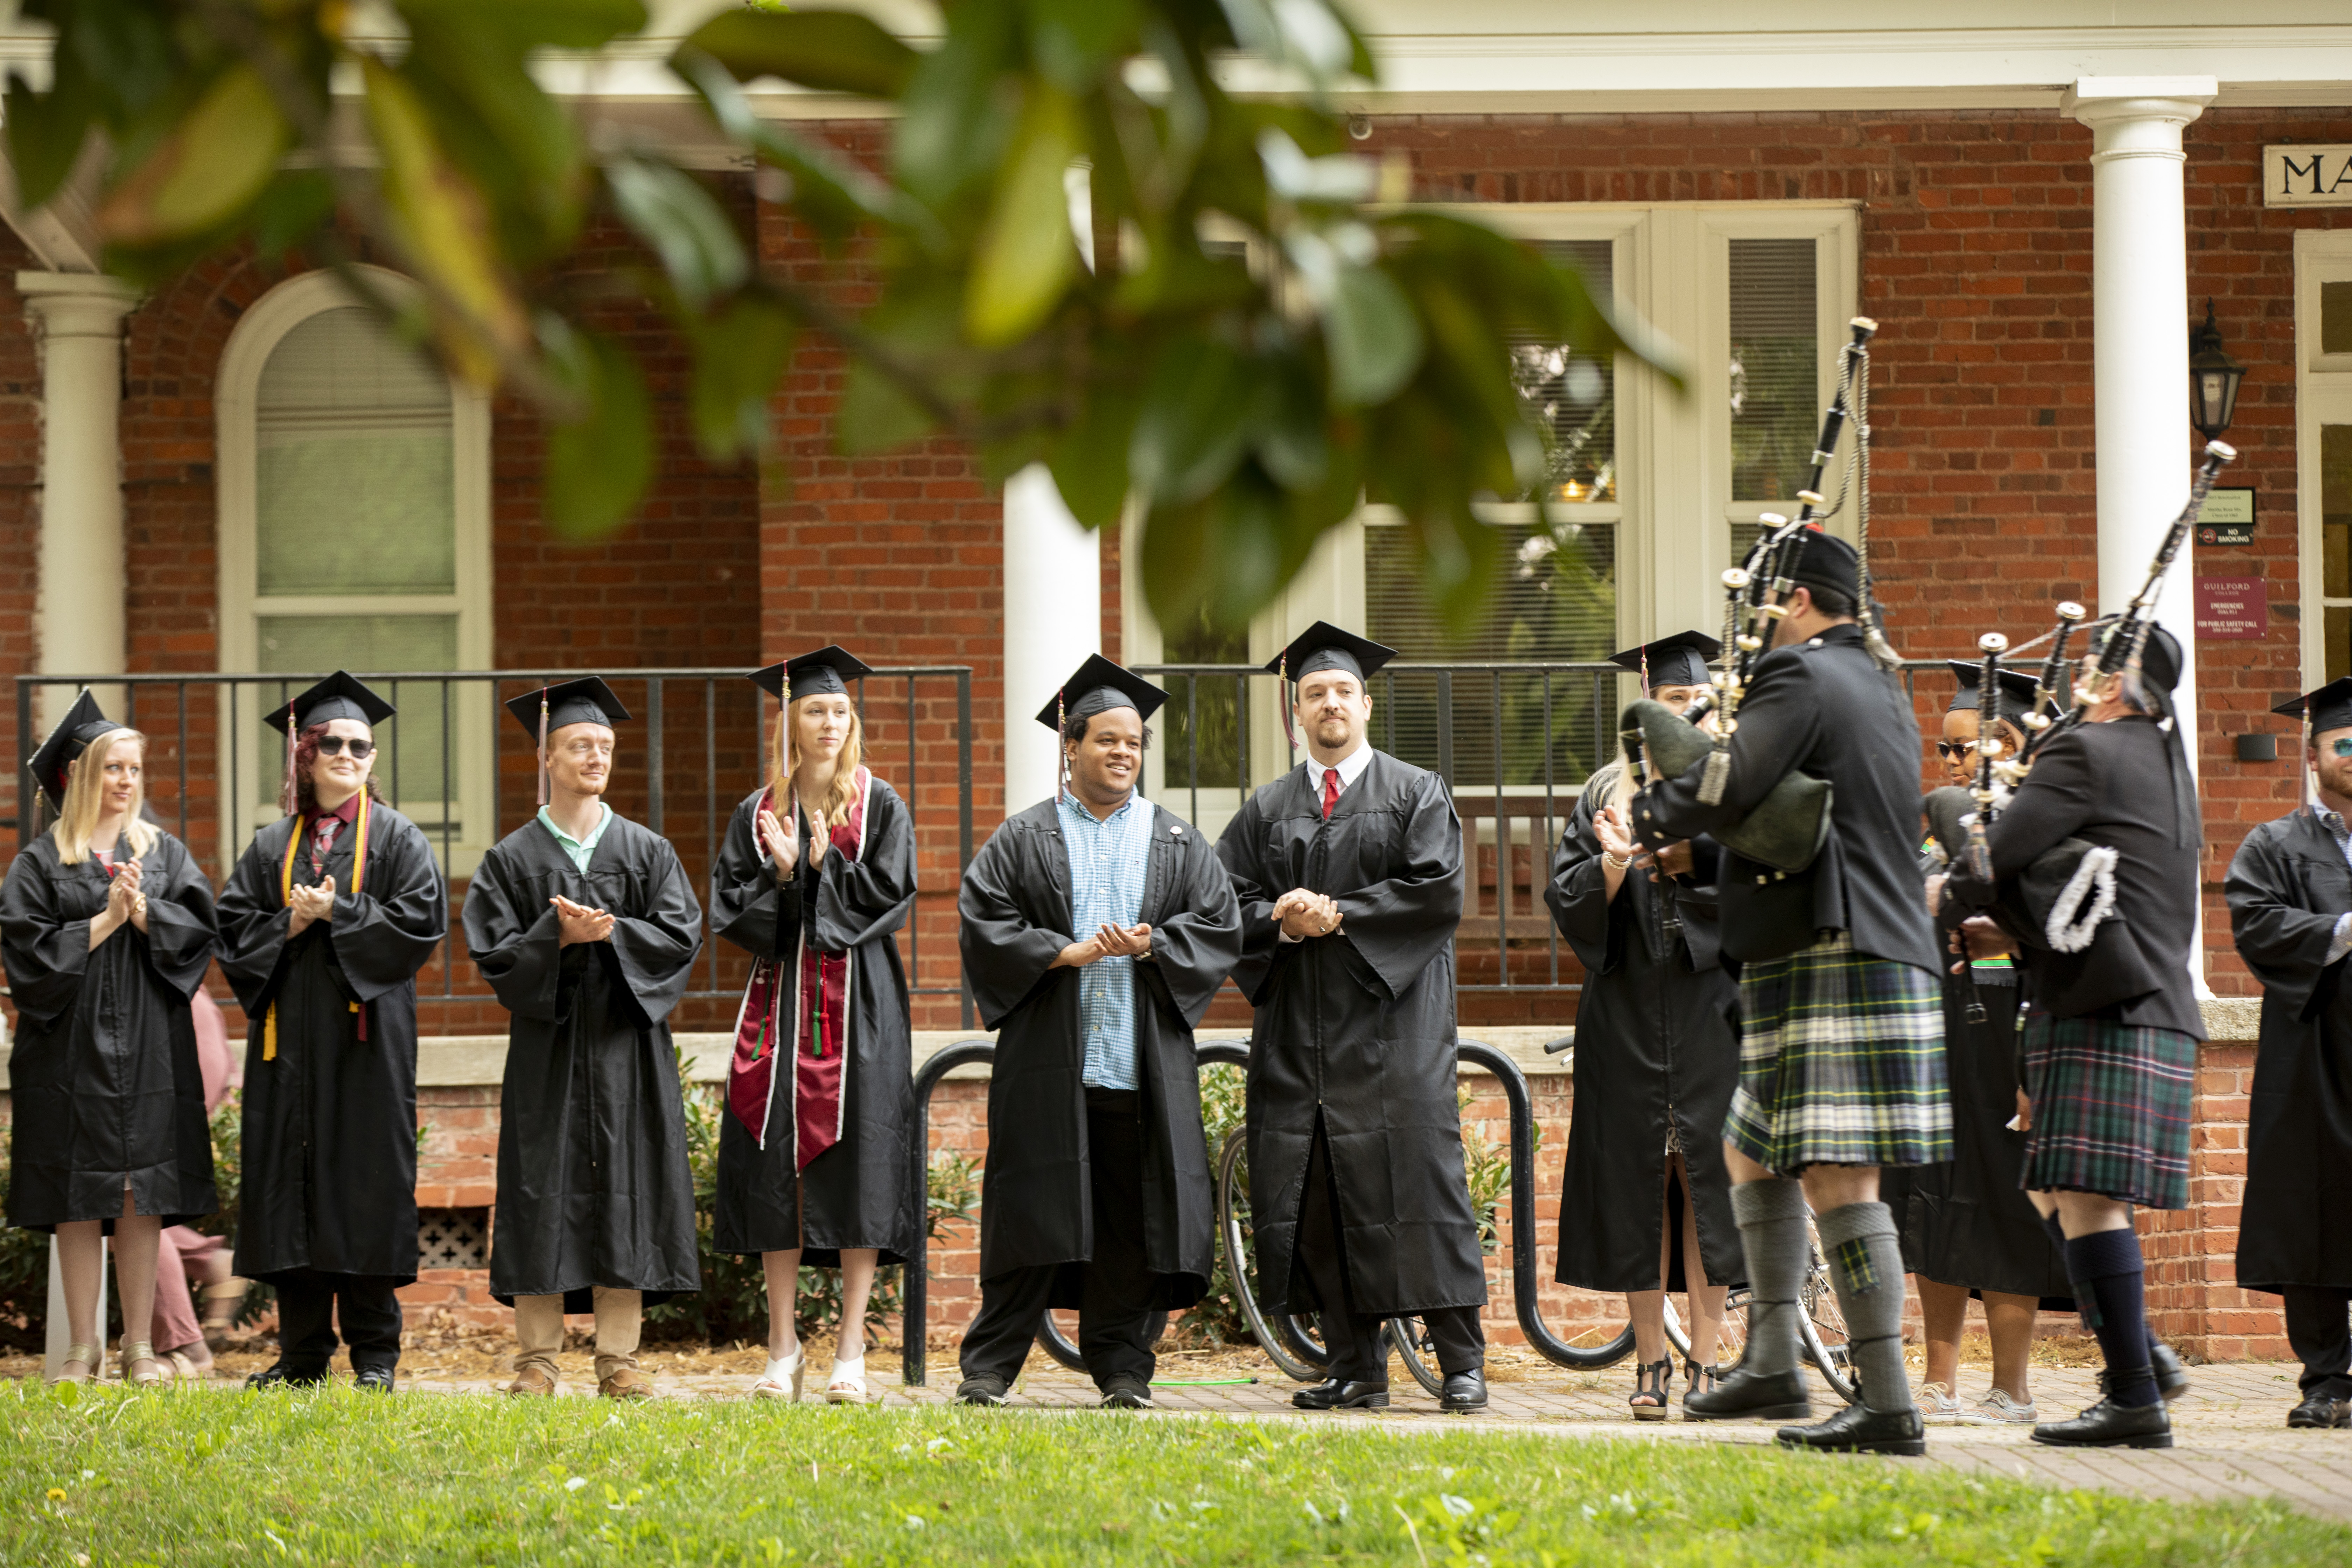 Bagpipers lead faculty to the Commencement ceremony.